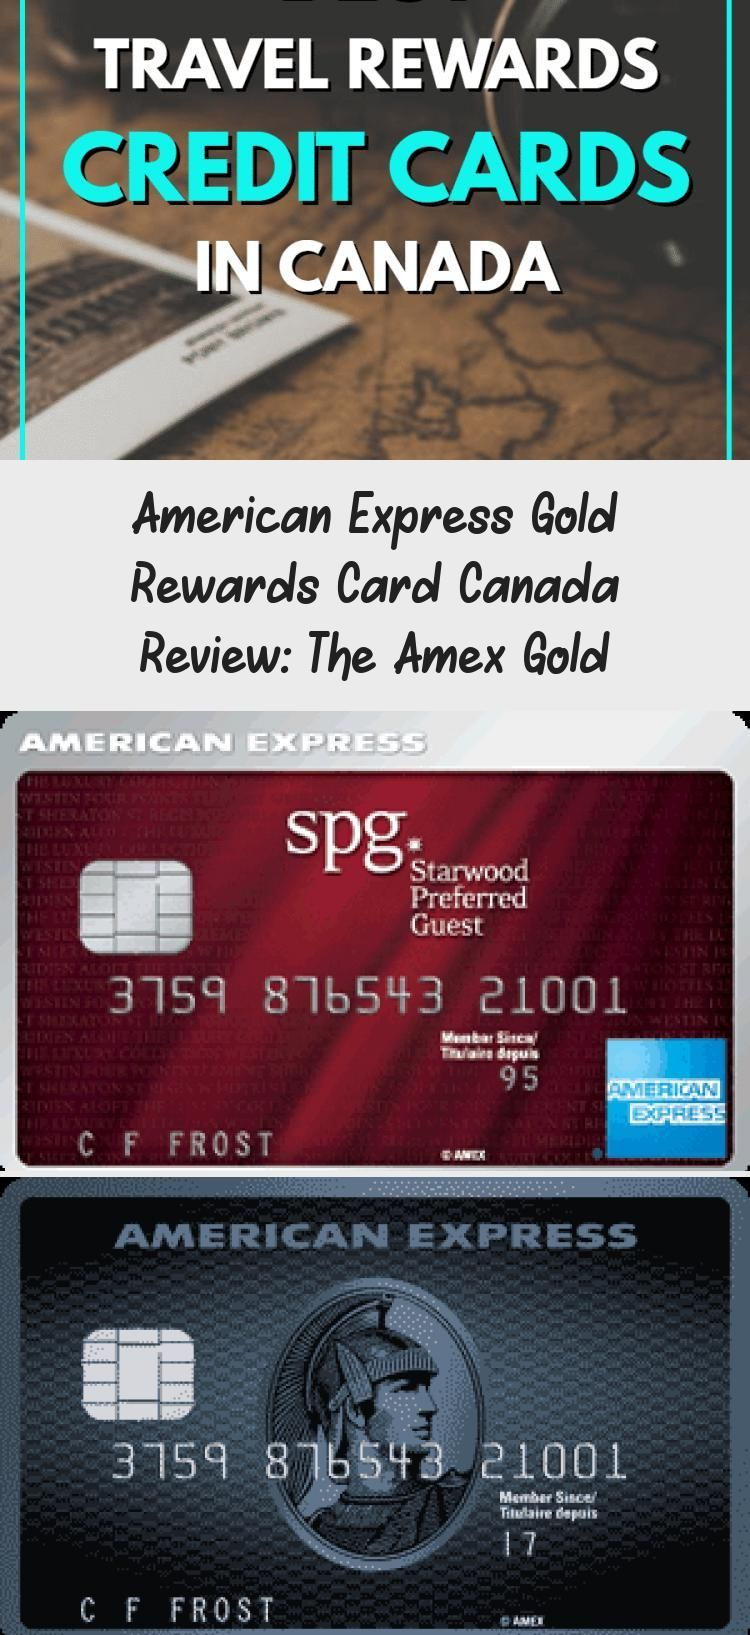 Credit Card Gold Are You Looking For The Best Travel Rewards Credit Cards How About One Th In 2020 Rewards Credit Cards Travel Credit Cards Travel Rewards Credit Cards